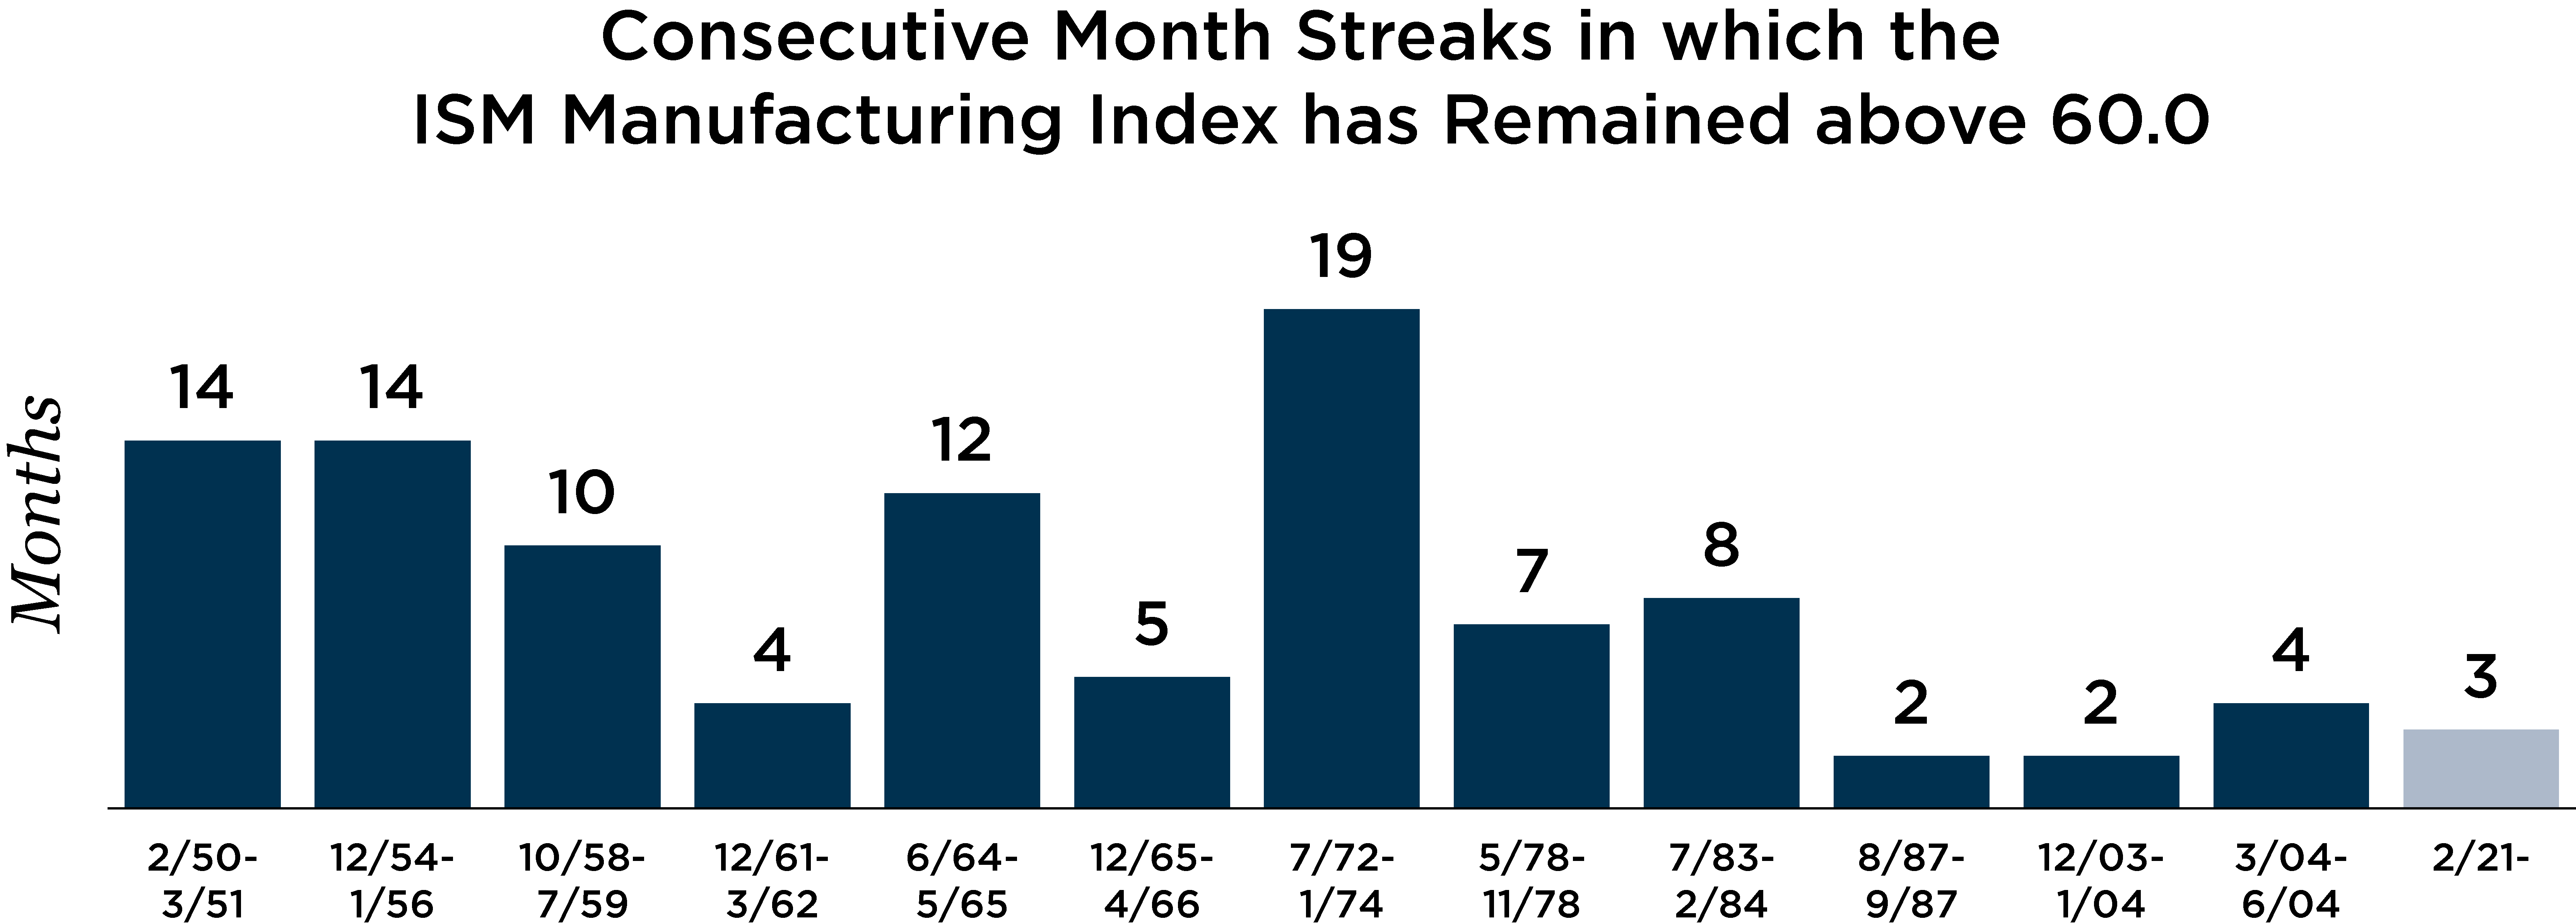 chart depicting consecutive month streaks in which ISM manufacturing index has remained above 60.0